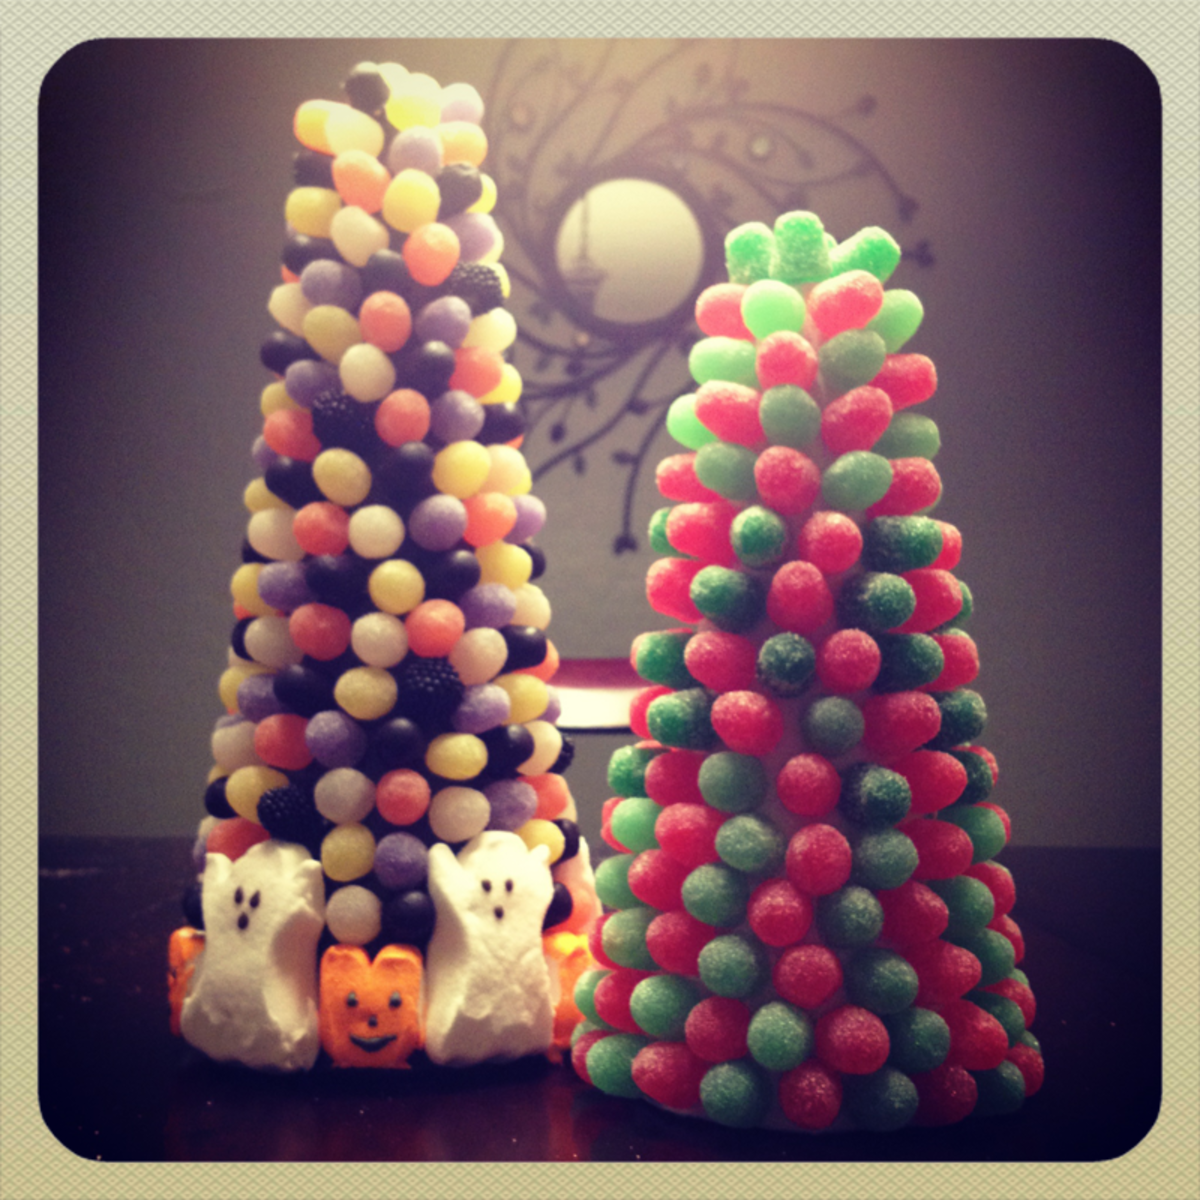 Gumdrop Trees: A Sweet Holiday Craft Using Candy | HubPages